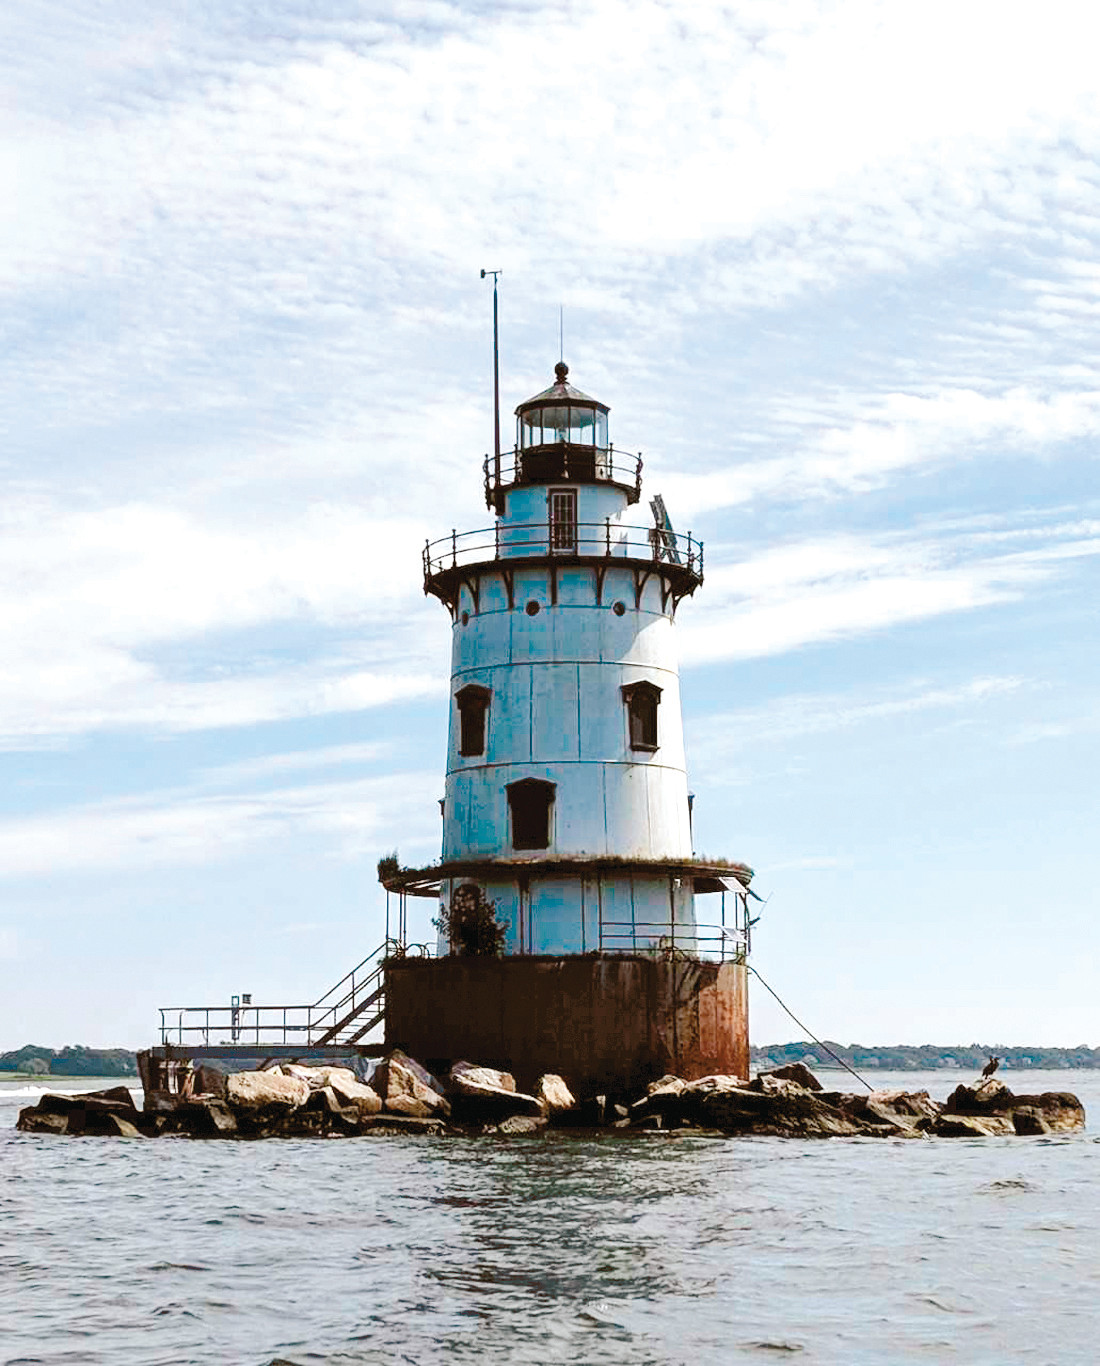 SHABBY LIGHT: Republican candidate for mayor Sue Stenhouse said this week that this picture of Conimicut Lighthouse is evidence of Mayor Joseph Solomon's failure as chairman of the Conimicut Lighthouse Foundation, a post to which he was named 14 years ago.